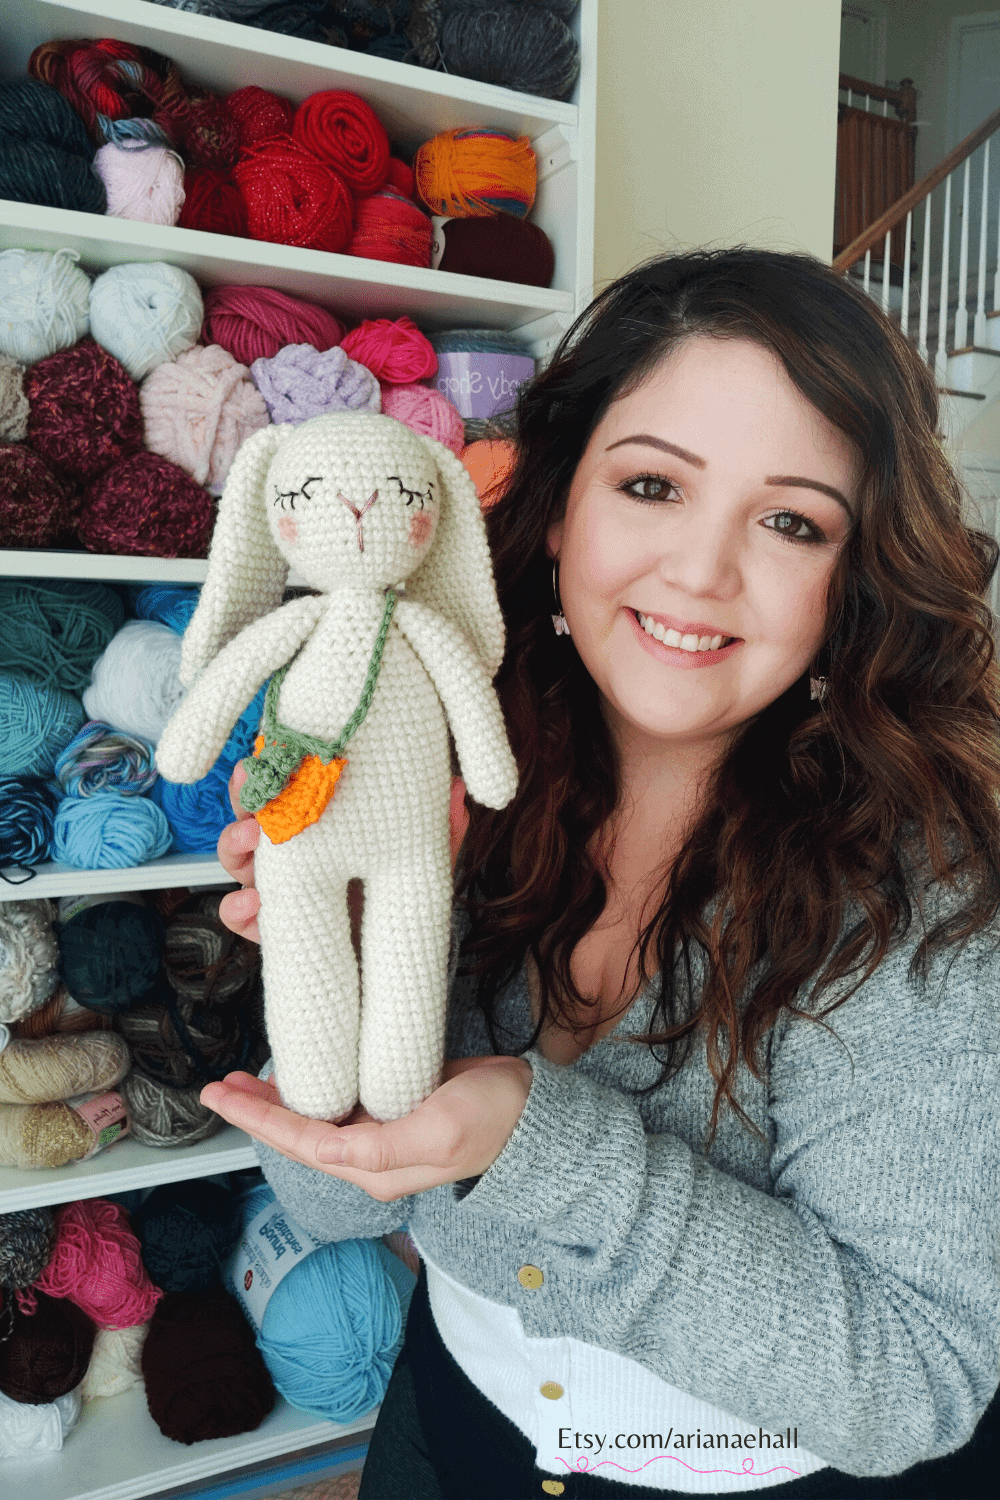 Woman holding a white crochet bunny on the left.